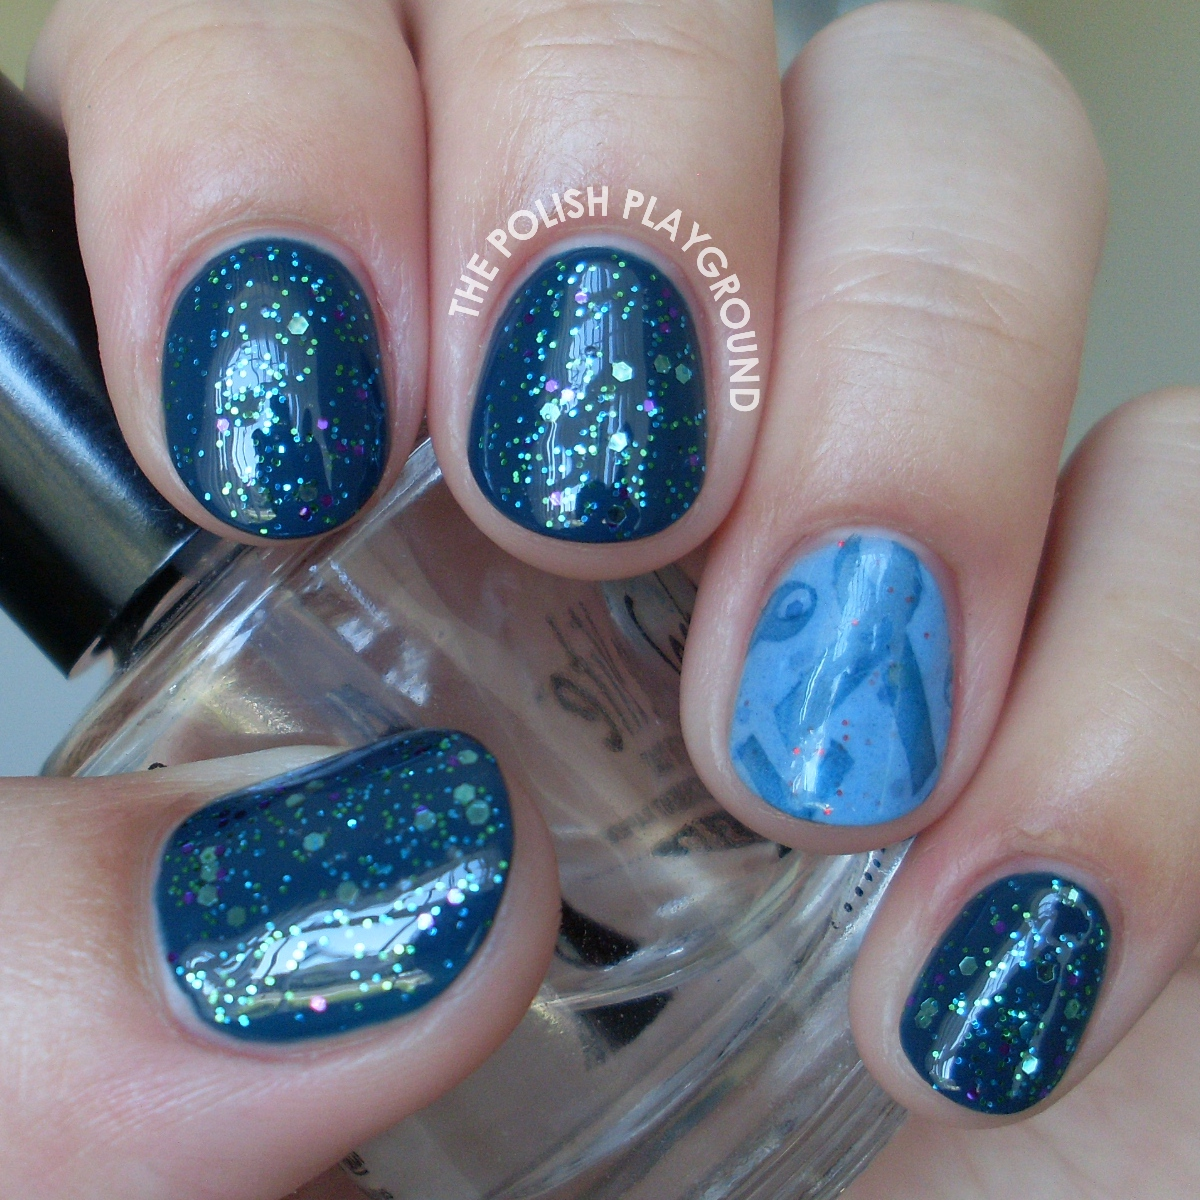 Glittery Teal with Ribbon Stamping Accent Nail Art for Ovarian Cancer Awareness